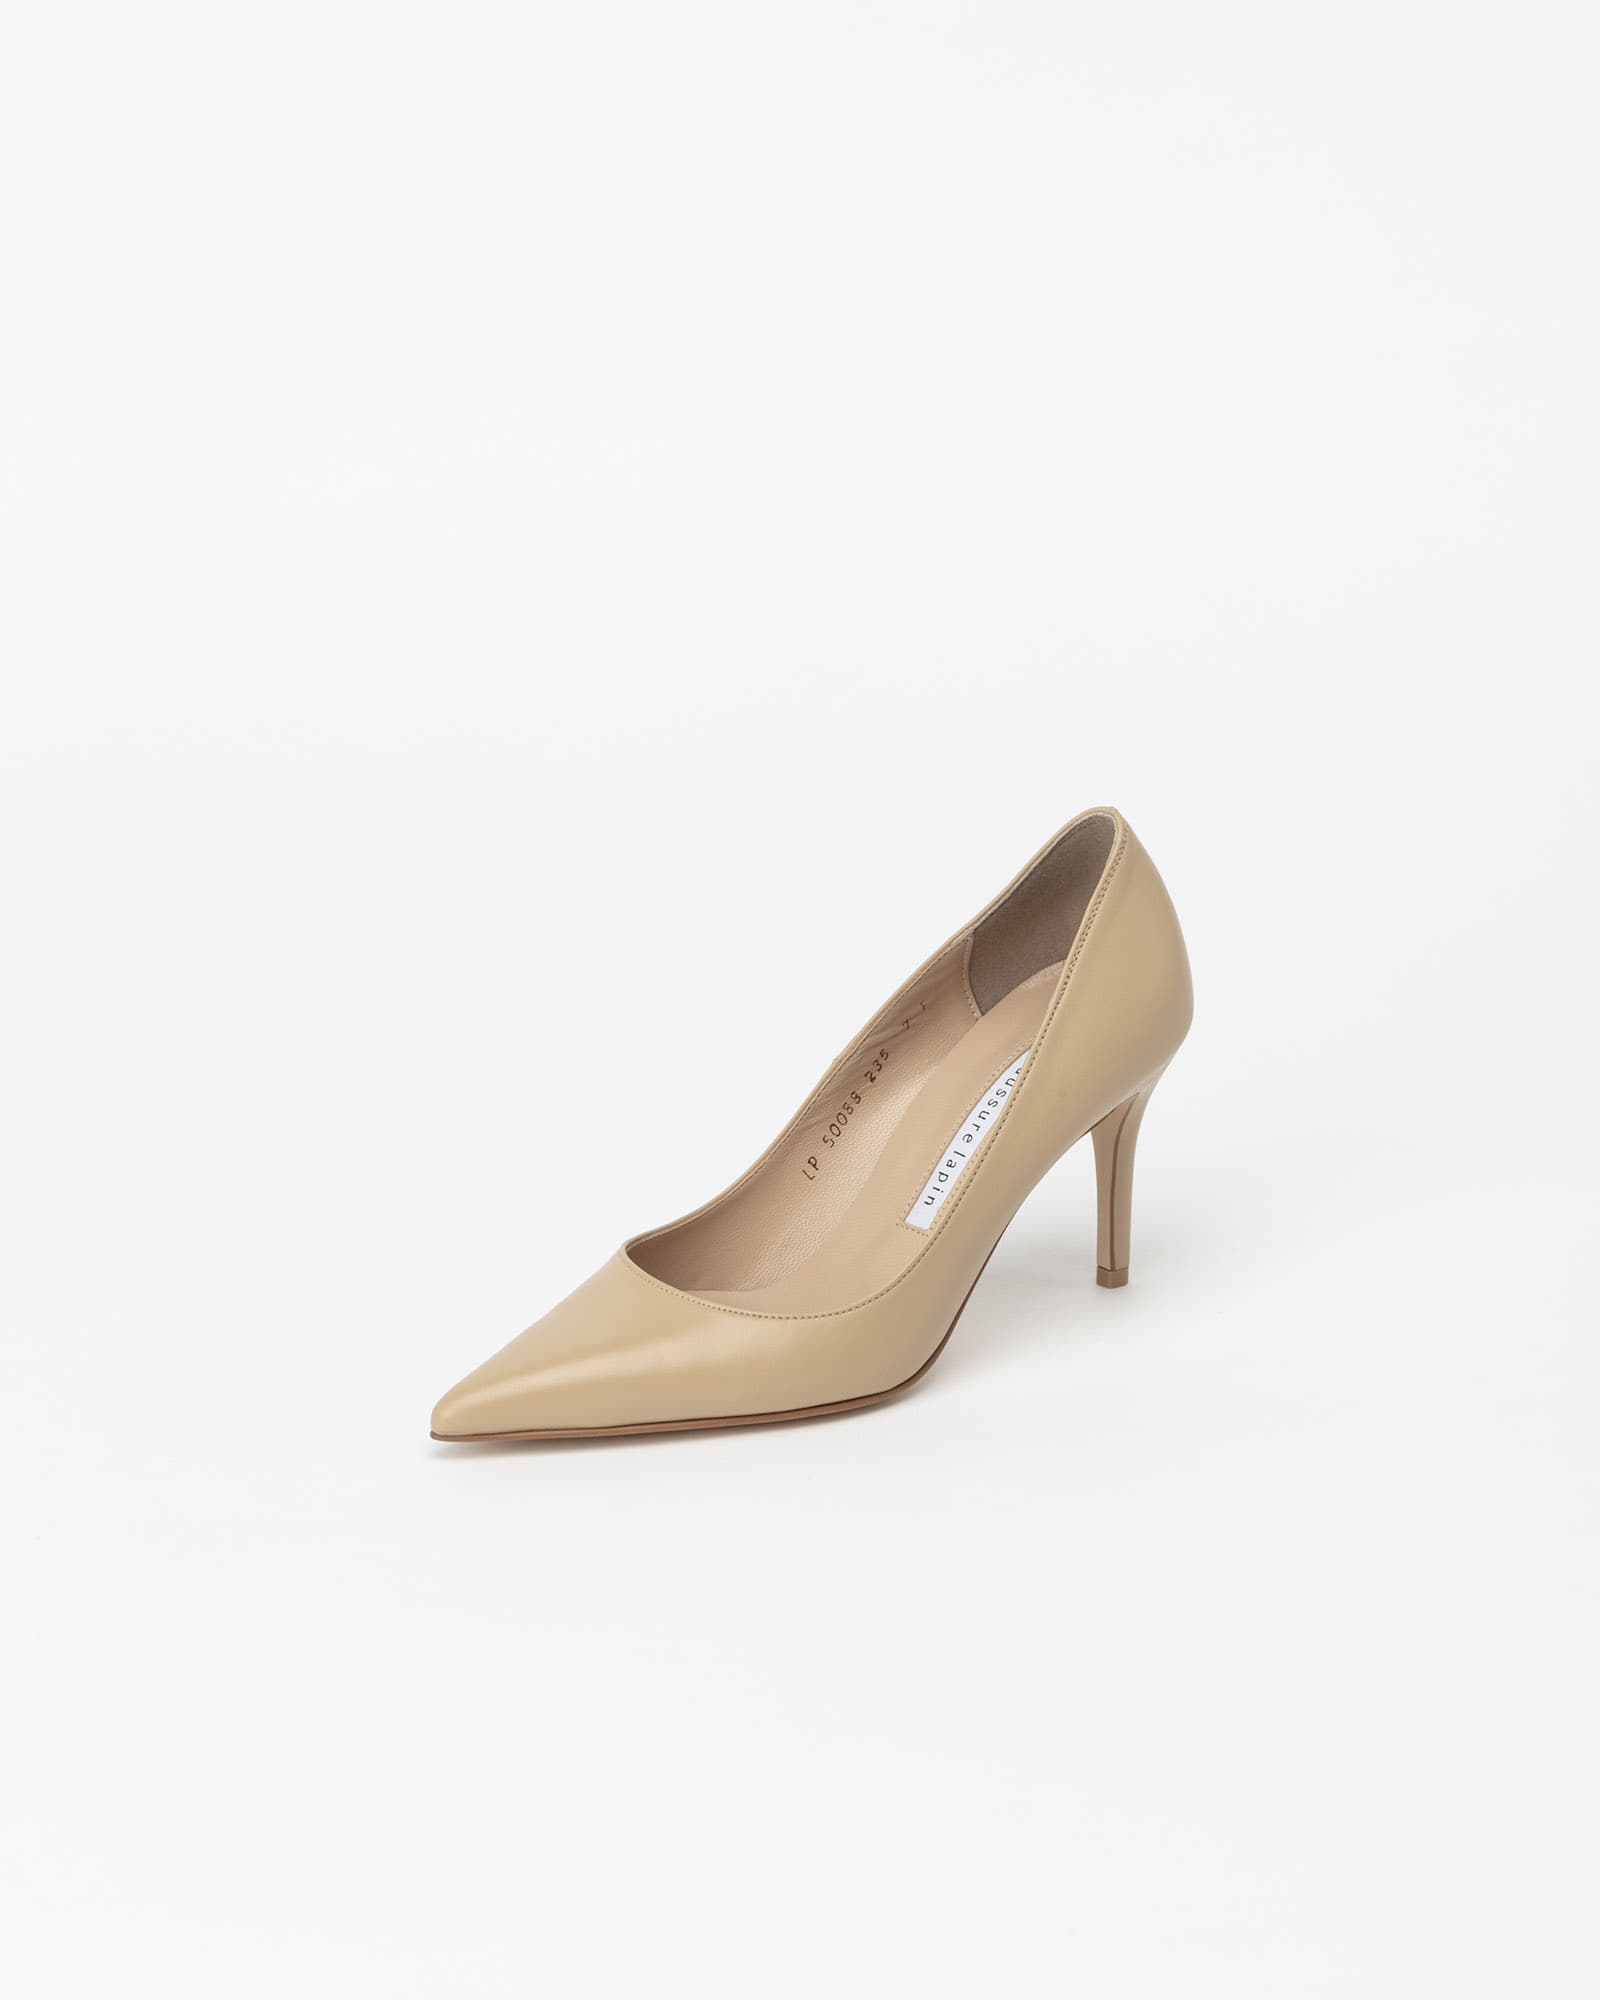 Chauffeur Stiletto Pumps in Yellow Beige